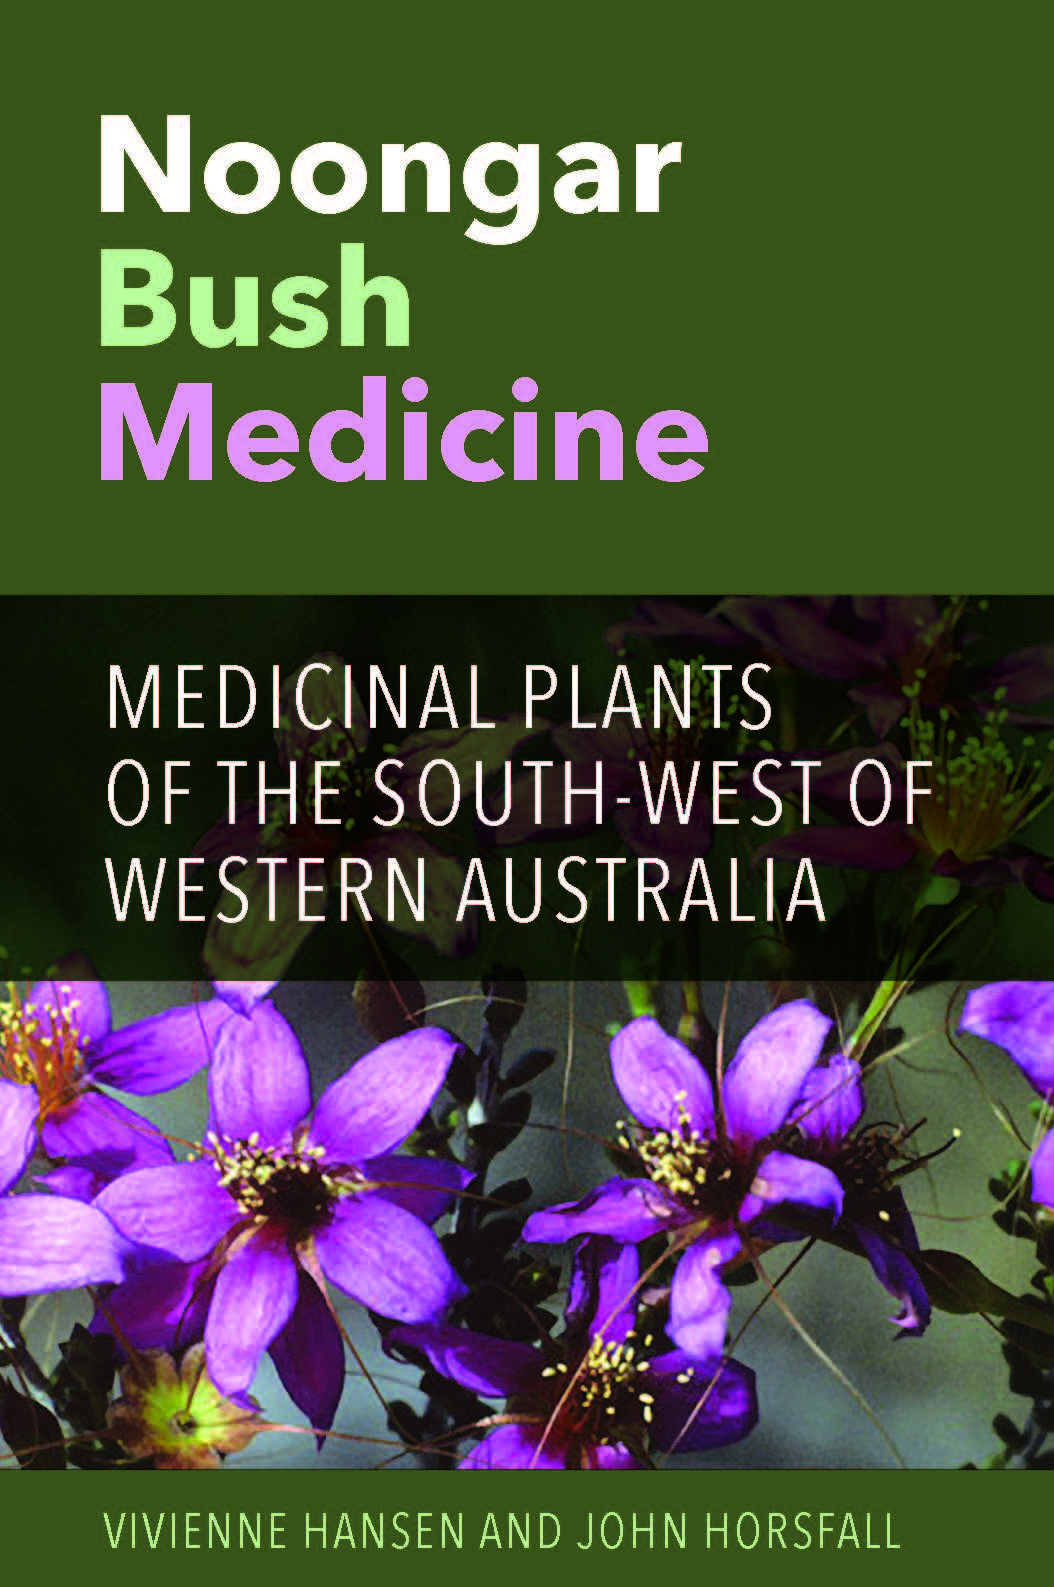 Noongar_Bush_Medicine_COVER